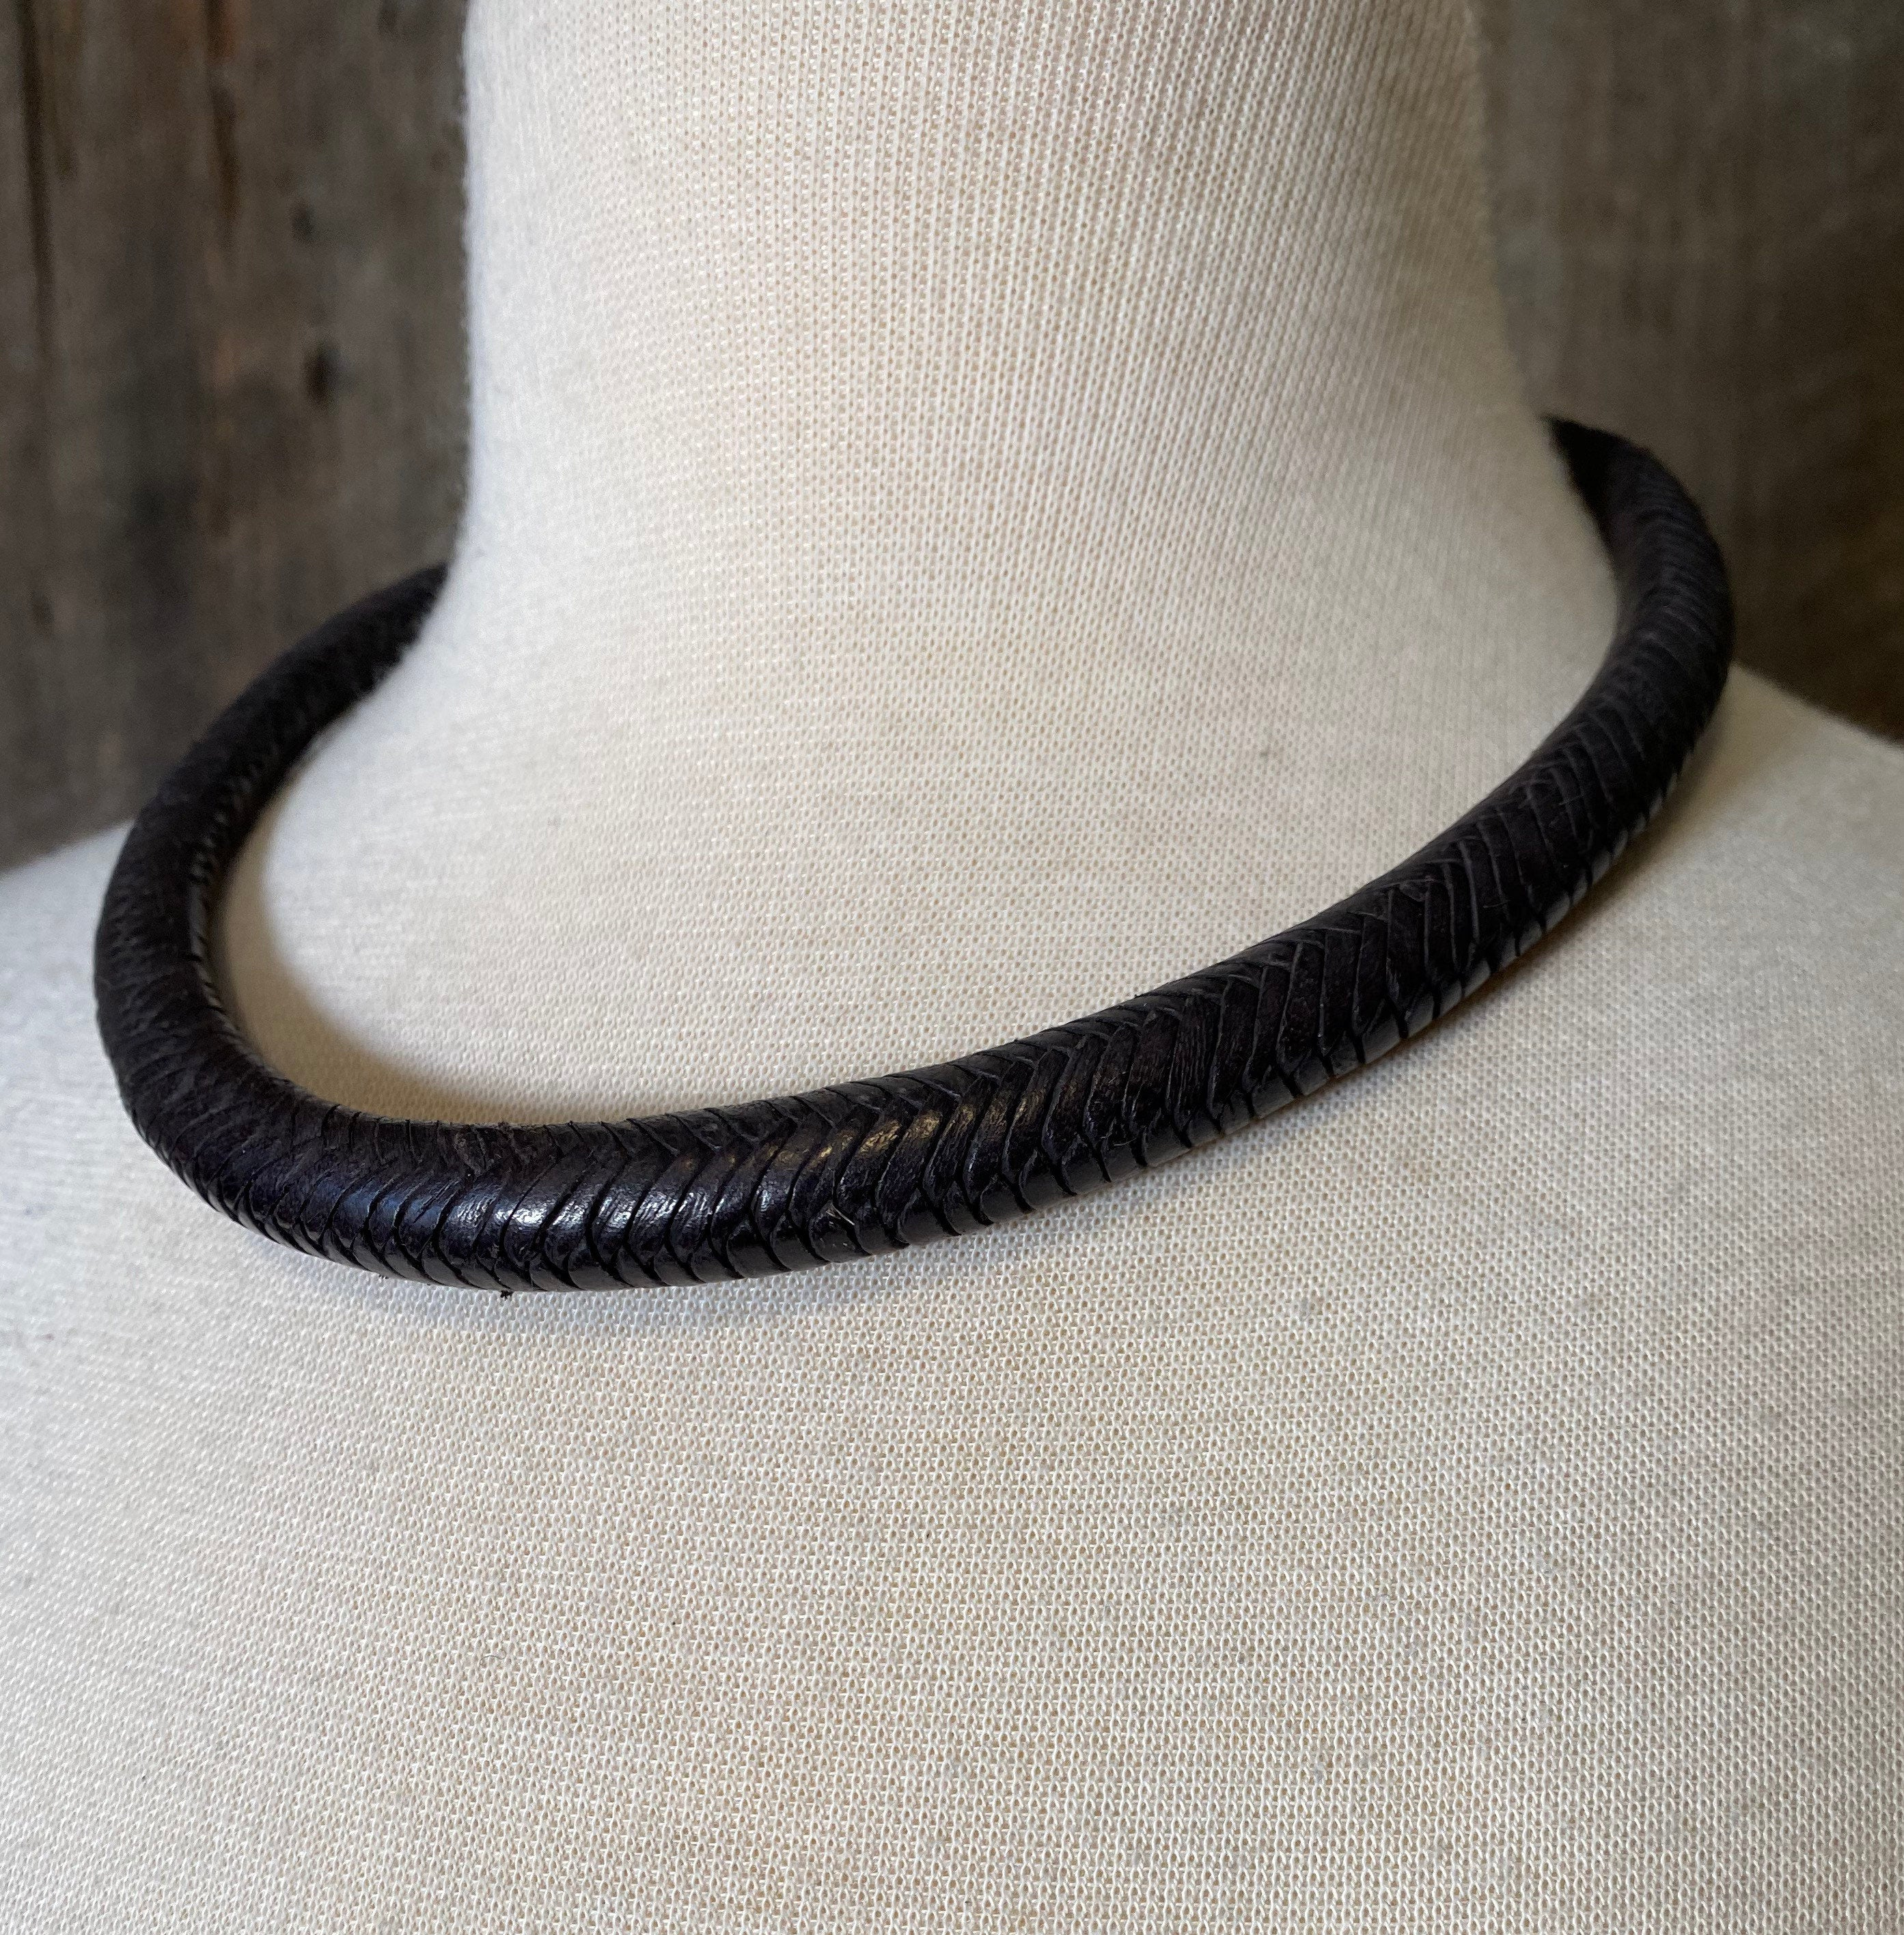 Tuareg Leather Necklace, Tuareg Necklace